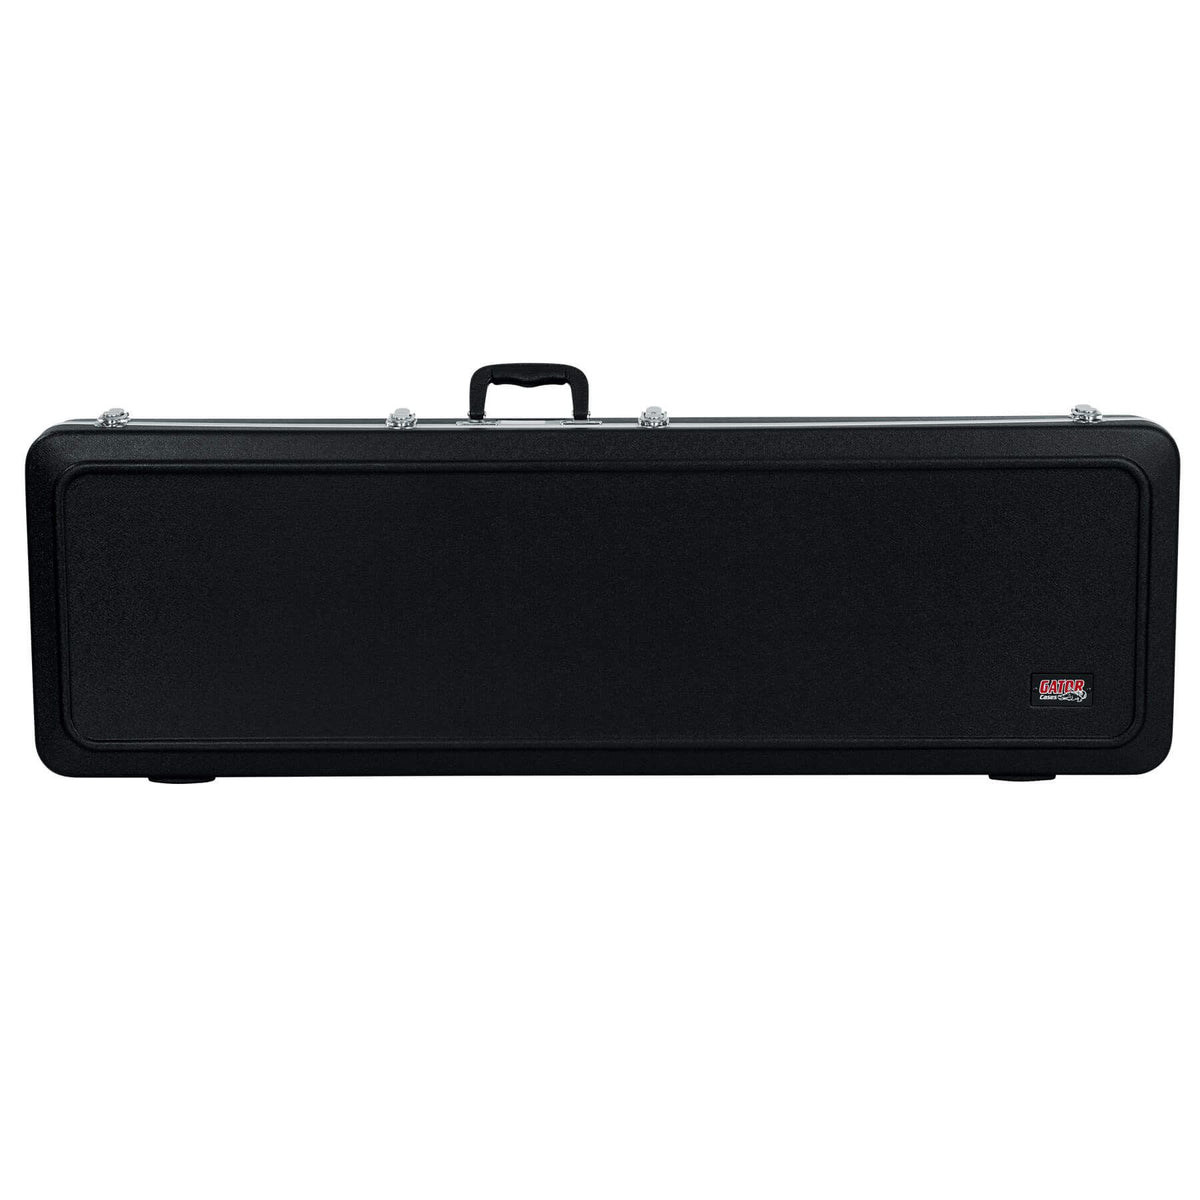 Gator Bass Guitar Case fits Fender Victor Bailey Fretless Jazz Bass